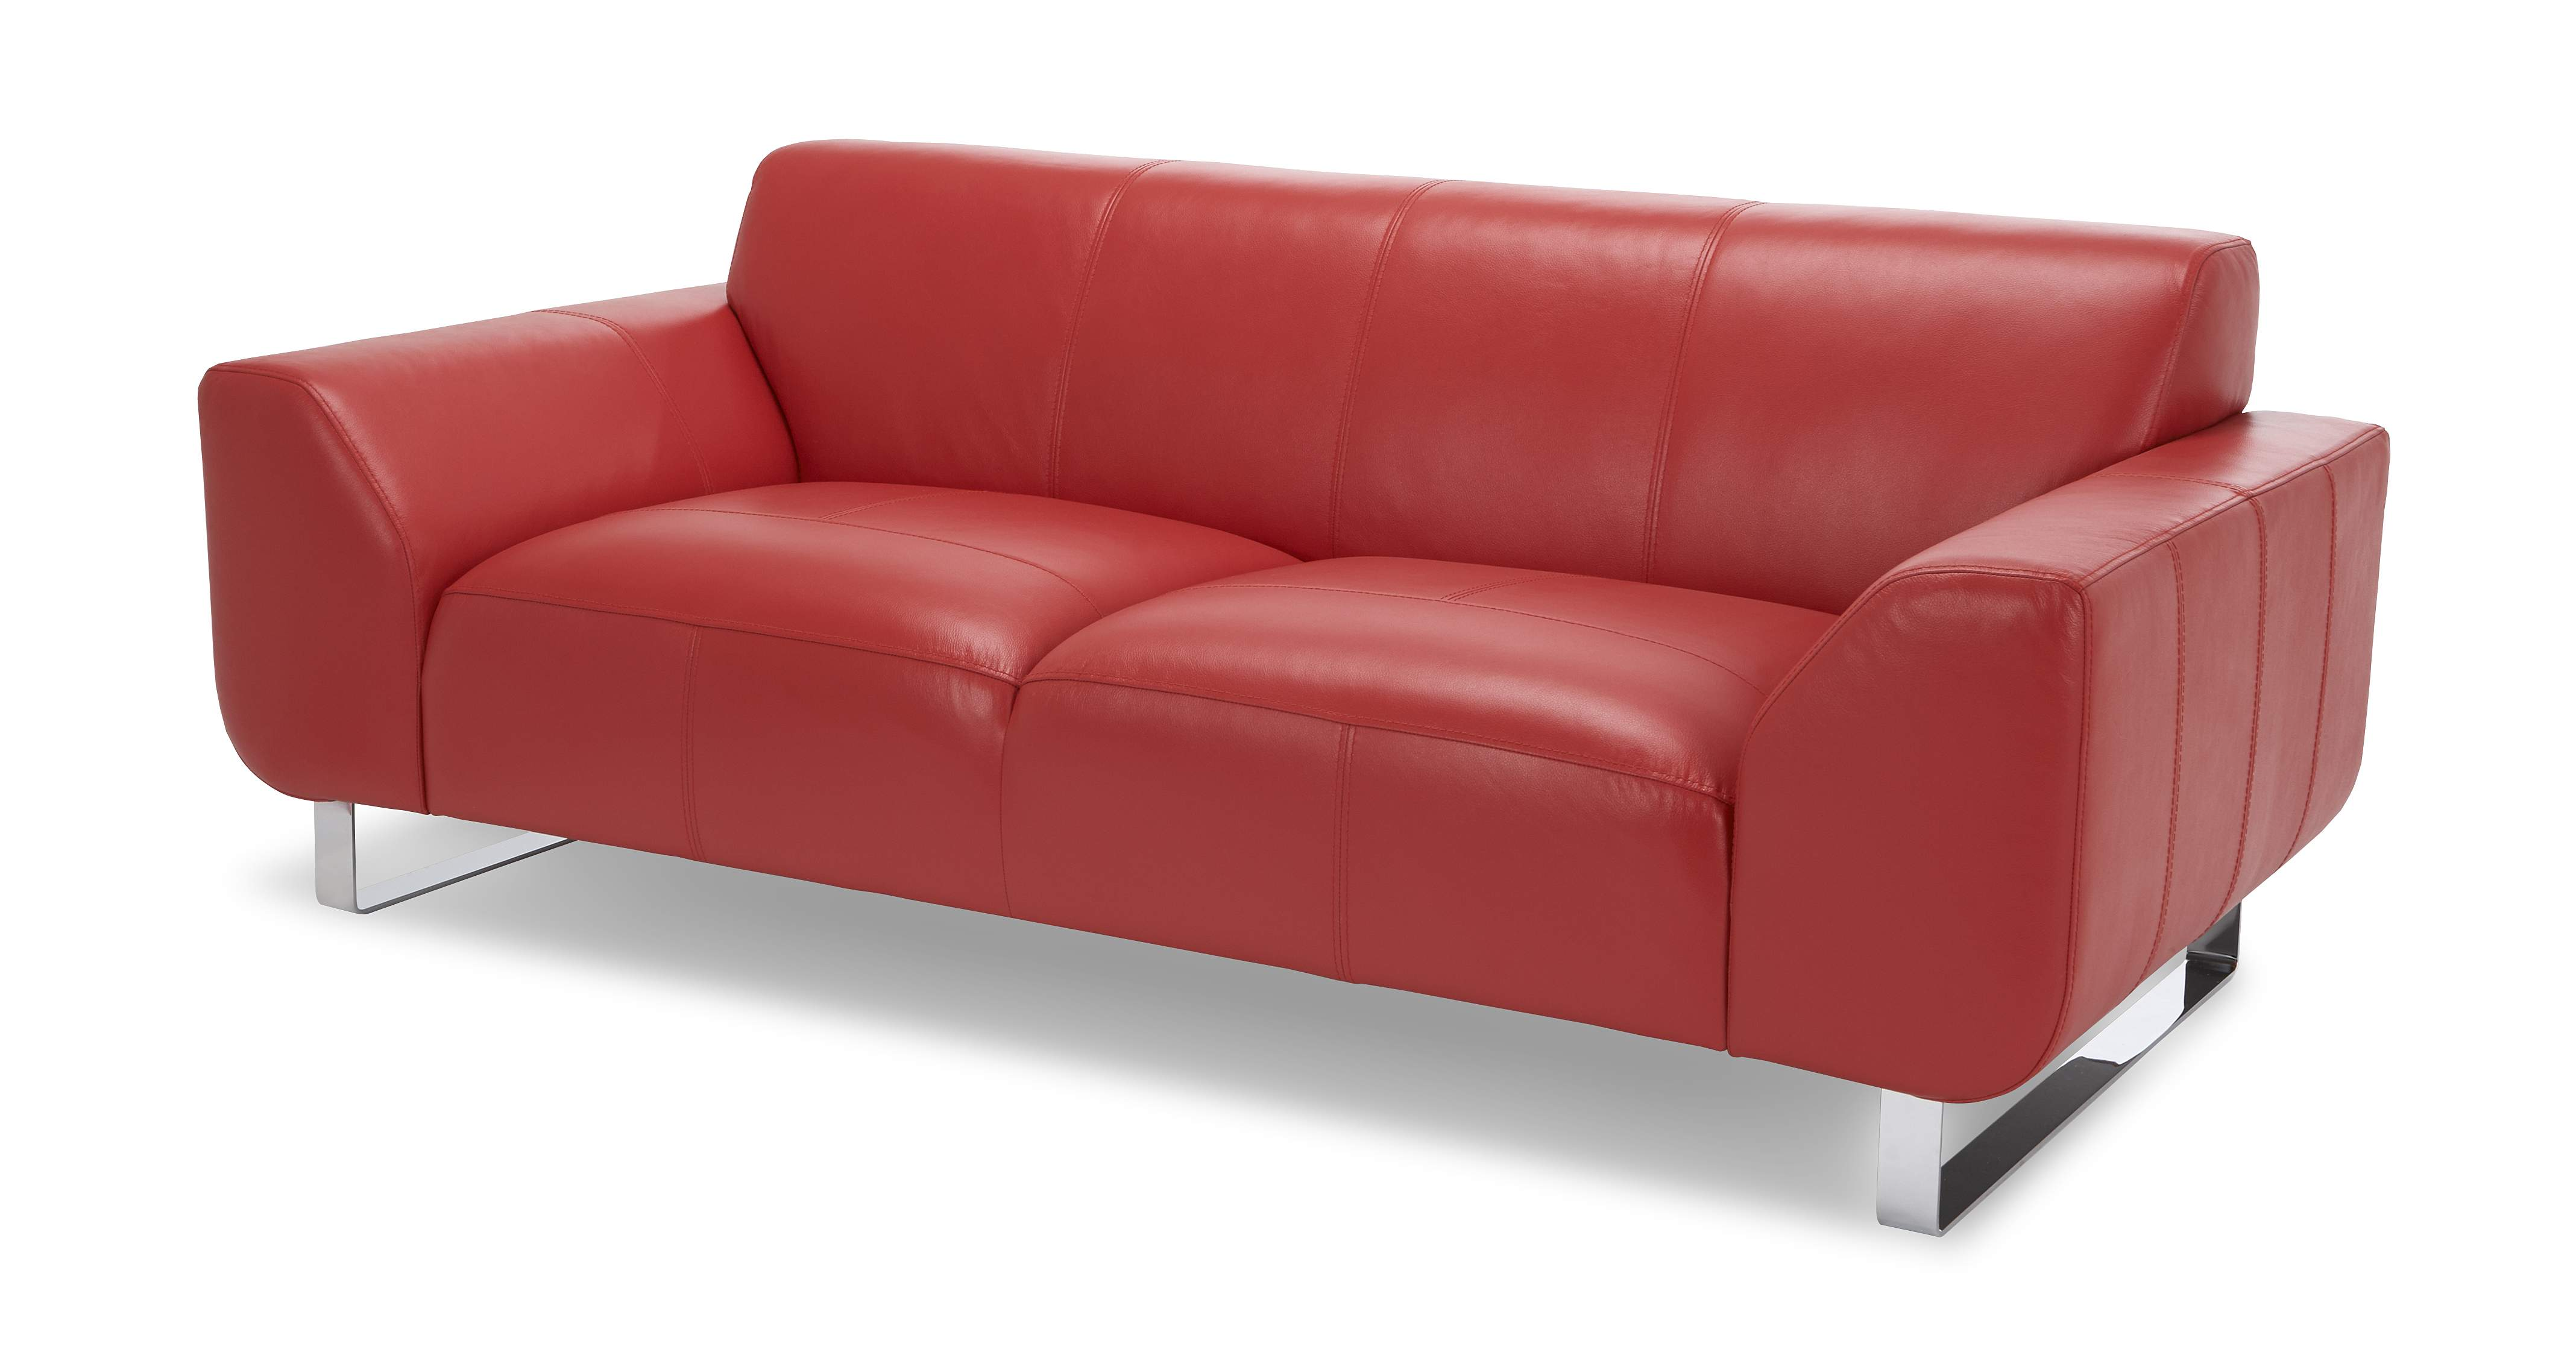 DFS Aspect Set 3 Seater Red Leather Sofa 2 Seater